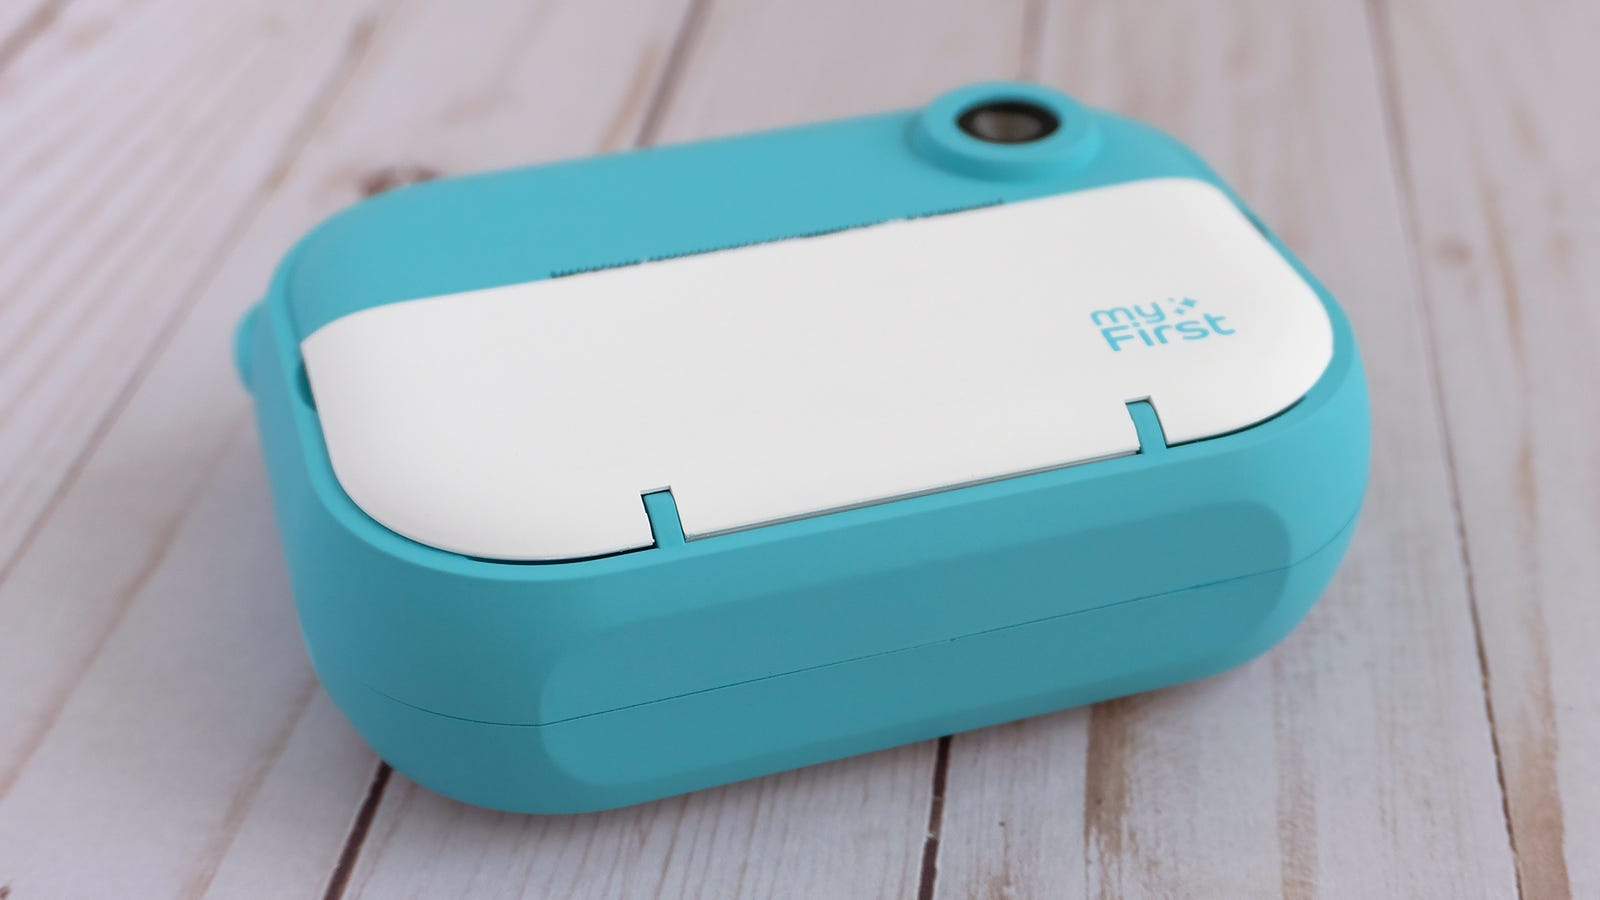 The teal parts of the camera have a soft silicone finish making it easier to grip, and the flattened bottom allows it to stand on its own, which is a nice design touch.